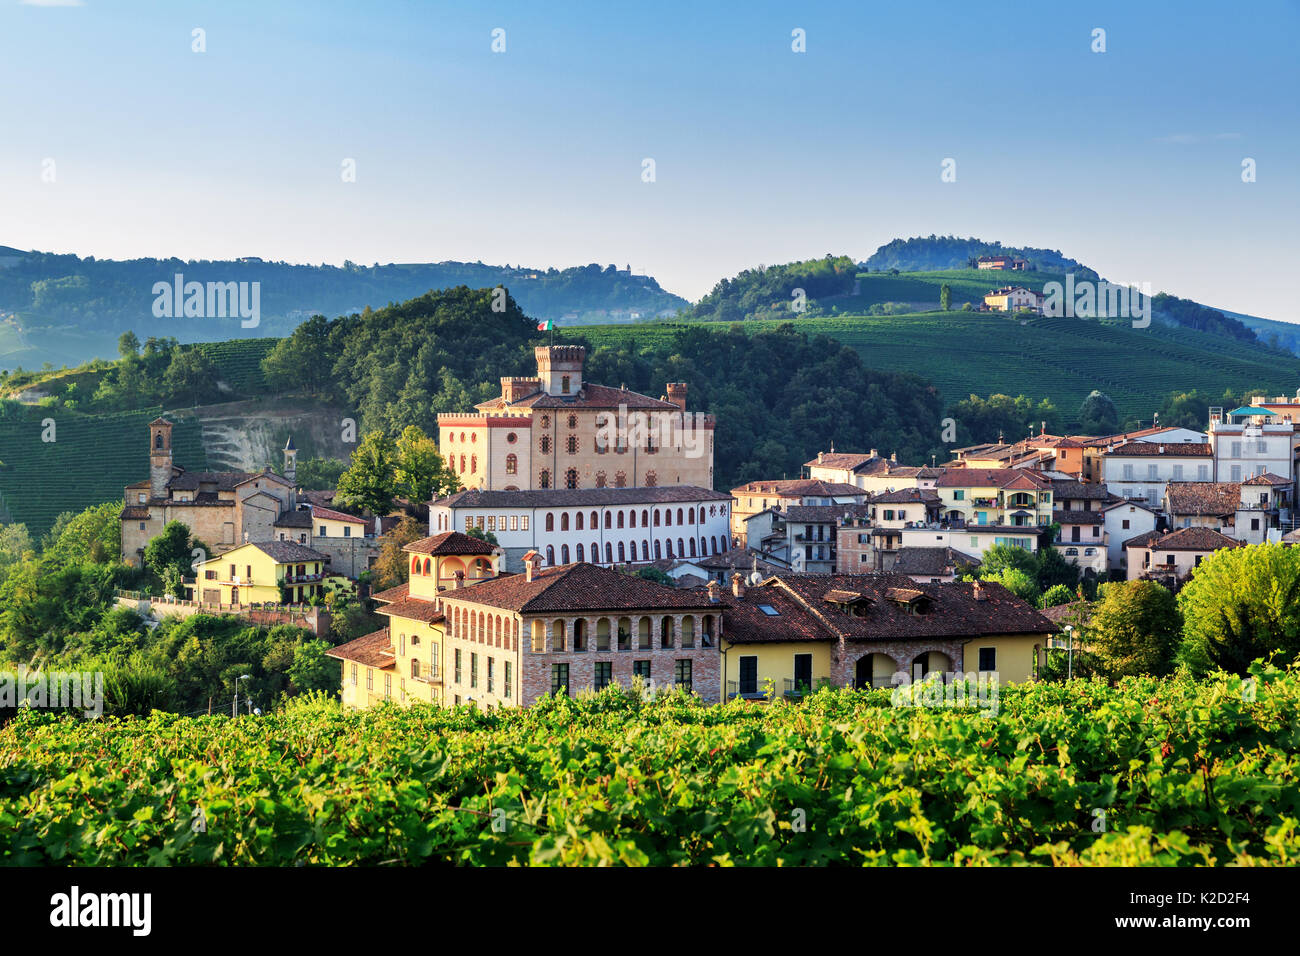 Village de Barbaresco Barolo avec Château, Castello di Barolo, Piémont, Italie Photo Stock